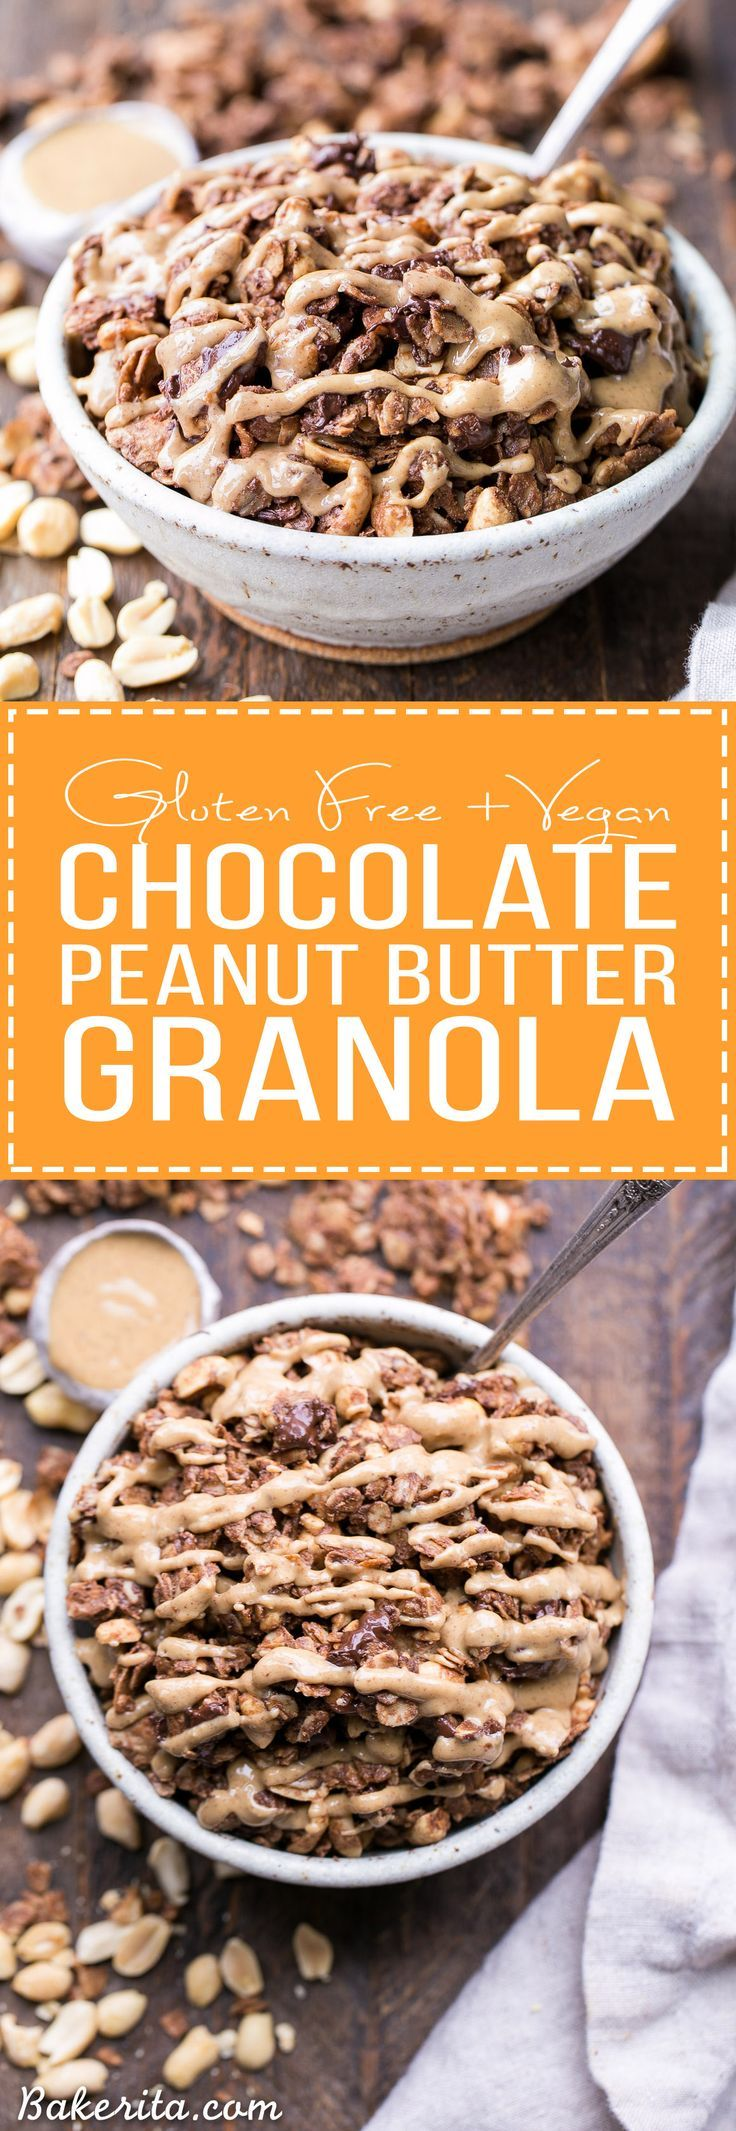 This Chocolate Peanut Butter Granola is the perfect indulgent breakfast or snack. It's gluten-free, dairy-free, vegan and refined sugar-free, and it tastes like dessert that you can have for breakfast!